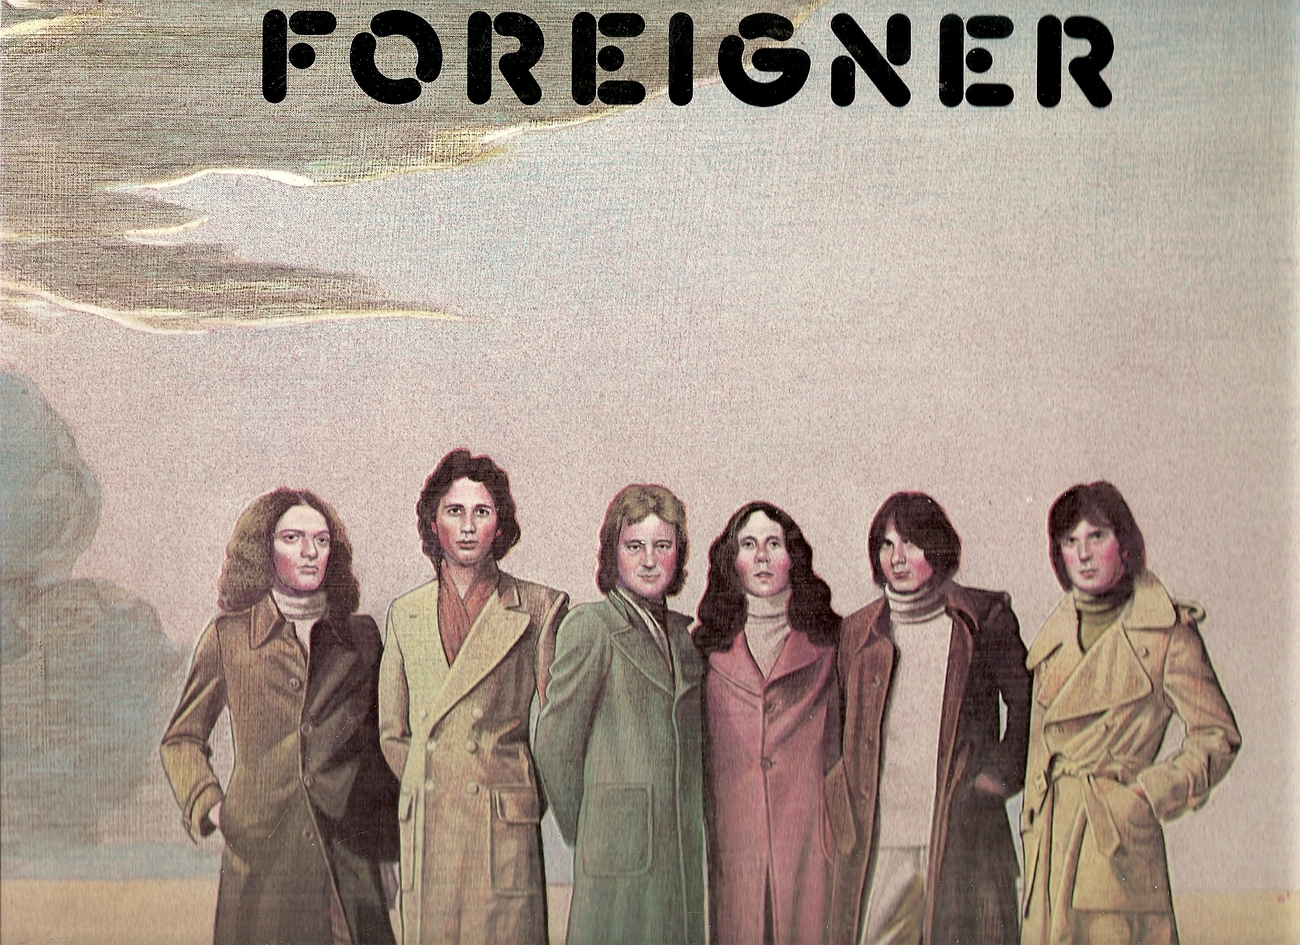 LP--Foreigner by Foreigner